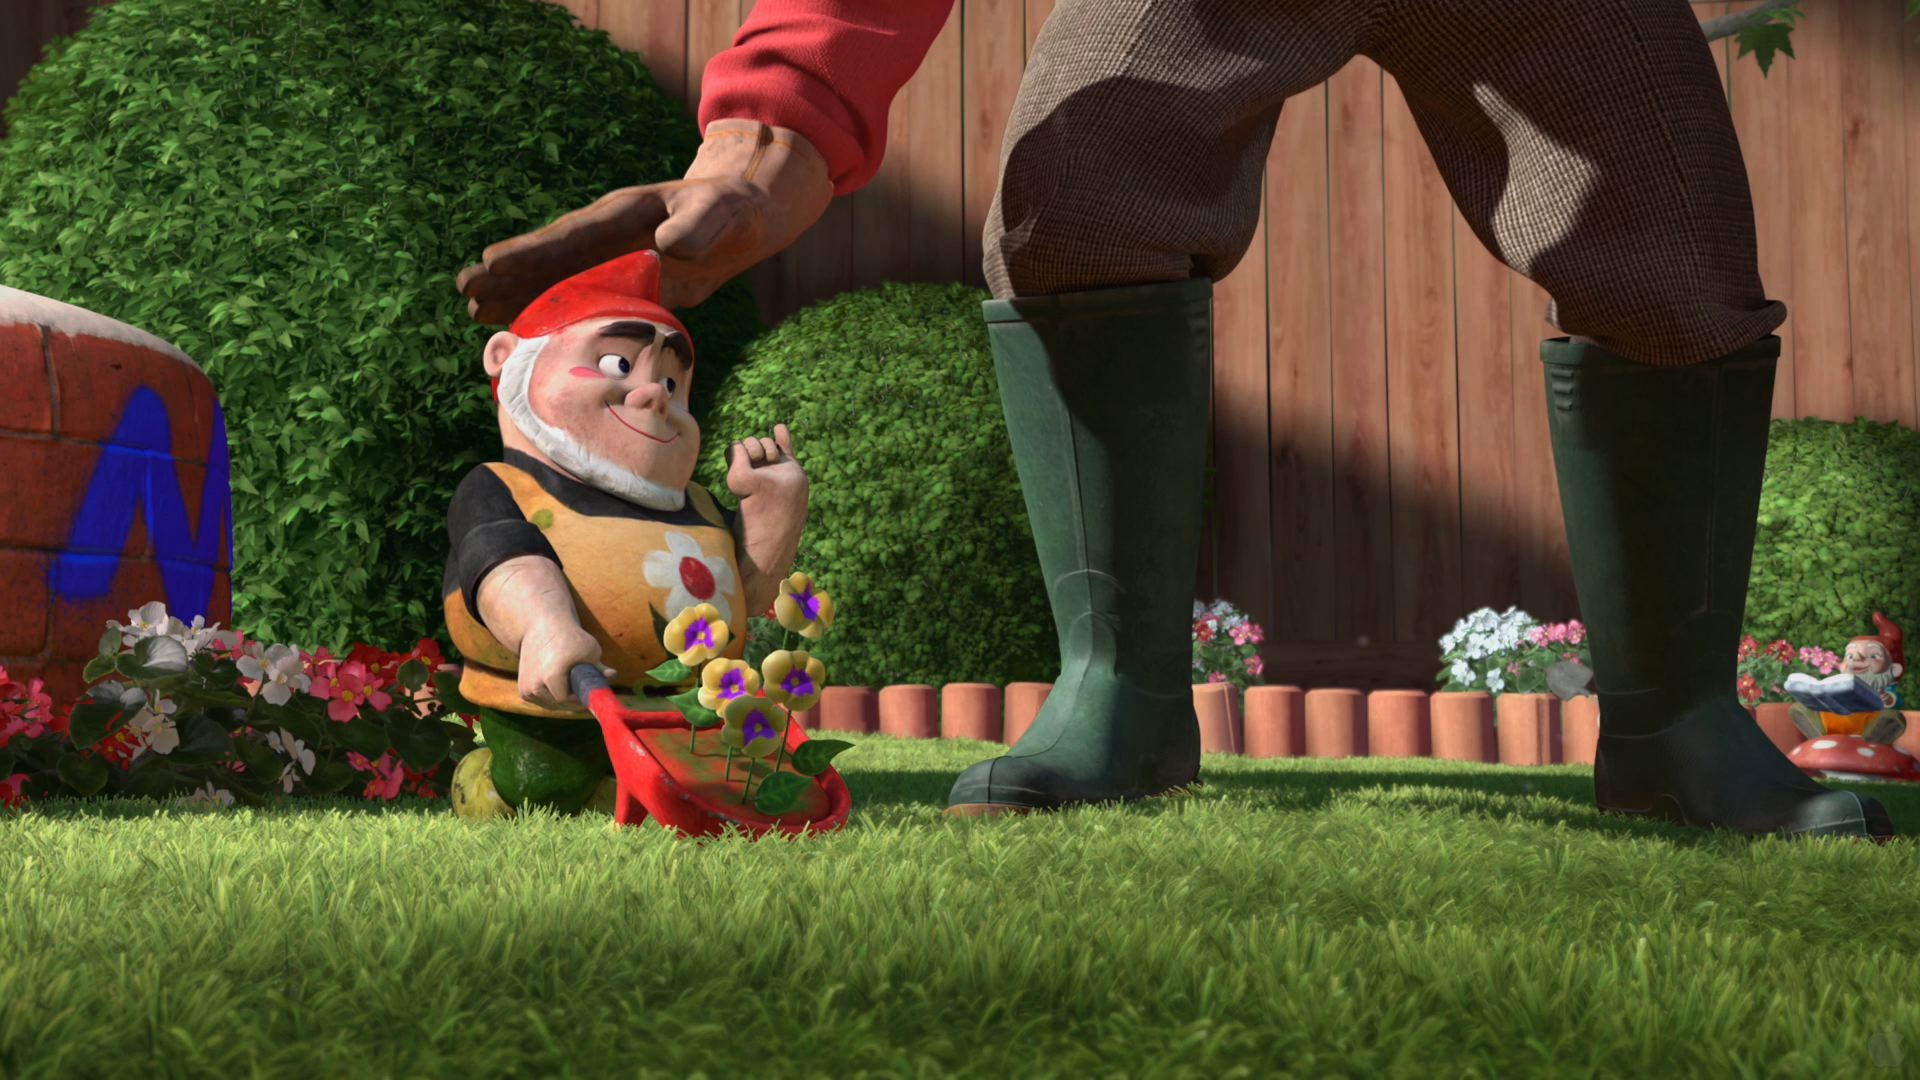 Res: 1920x1080, Tybalt the Garden Gnome from Gnomeo and Juliet Desktop Wallpaper